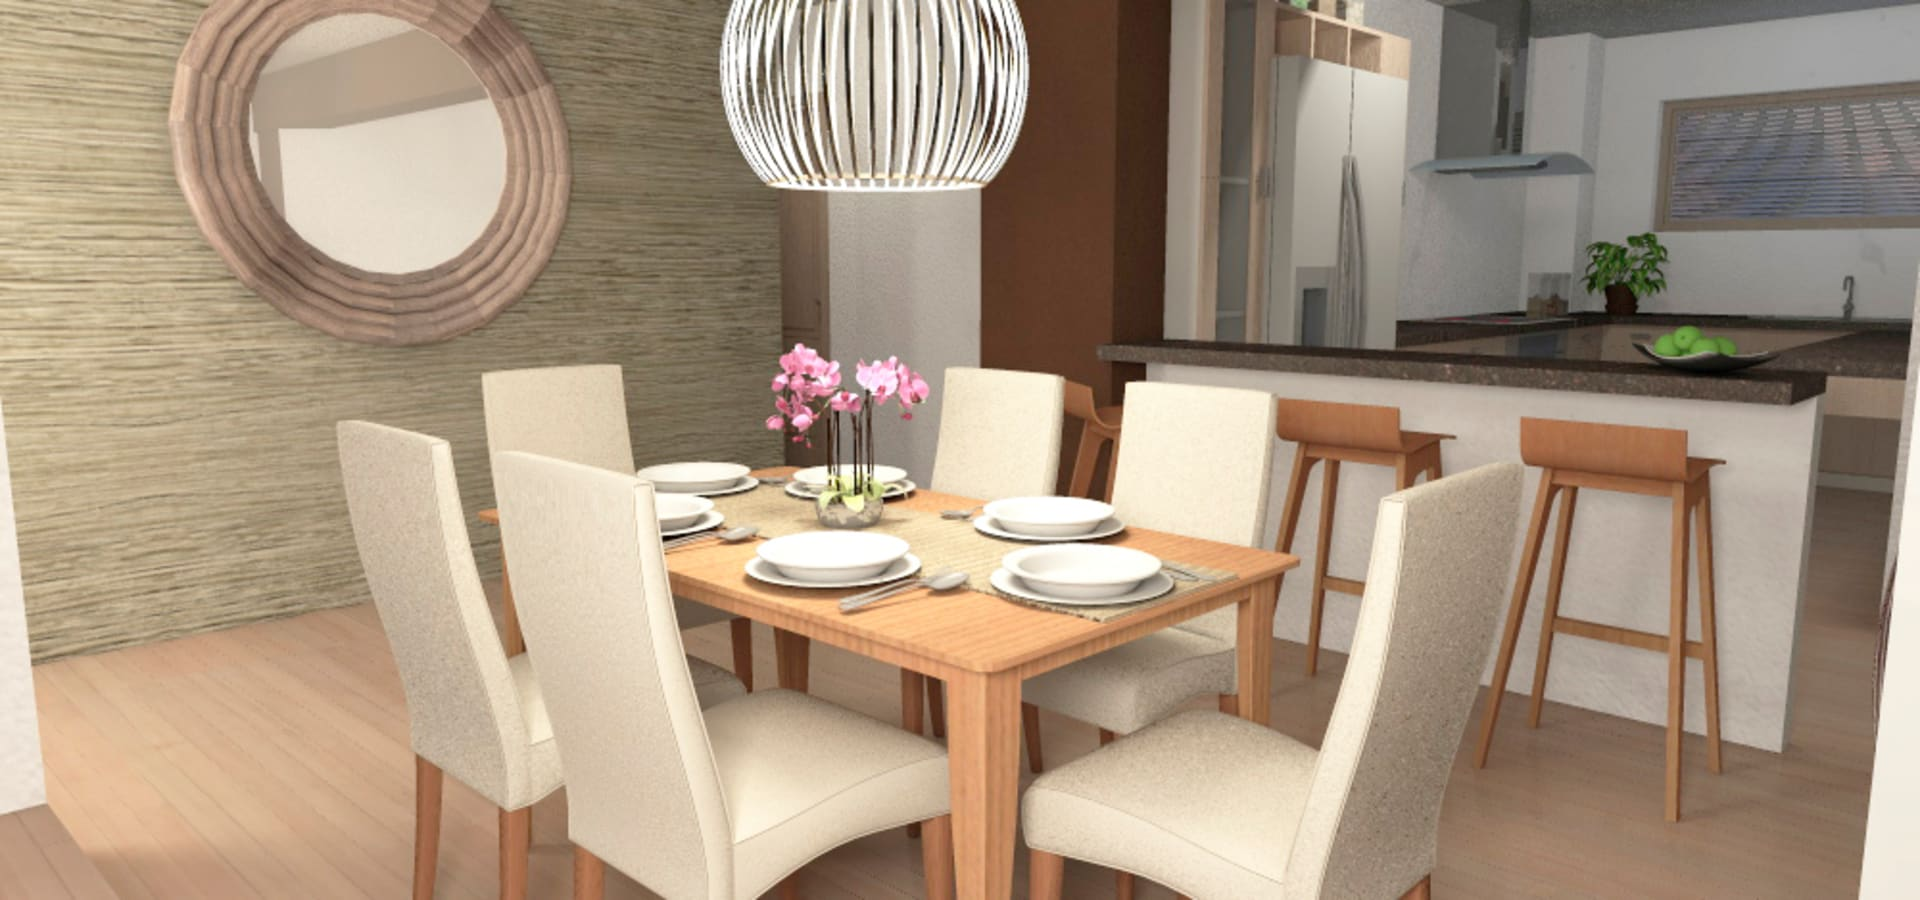 Diseño interior Living comedor von MM Design | homify